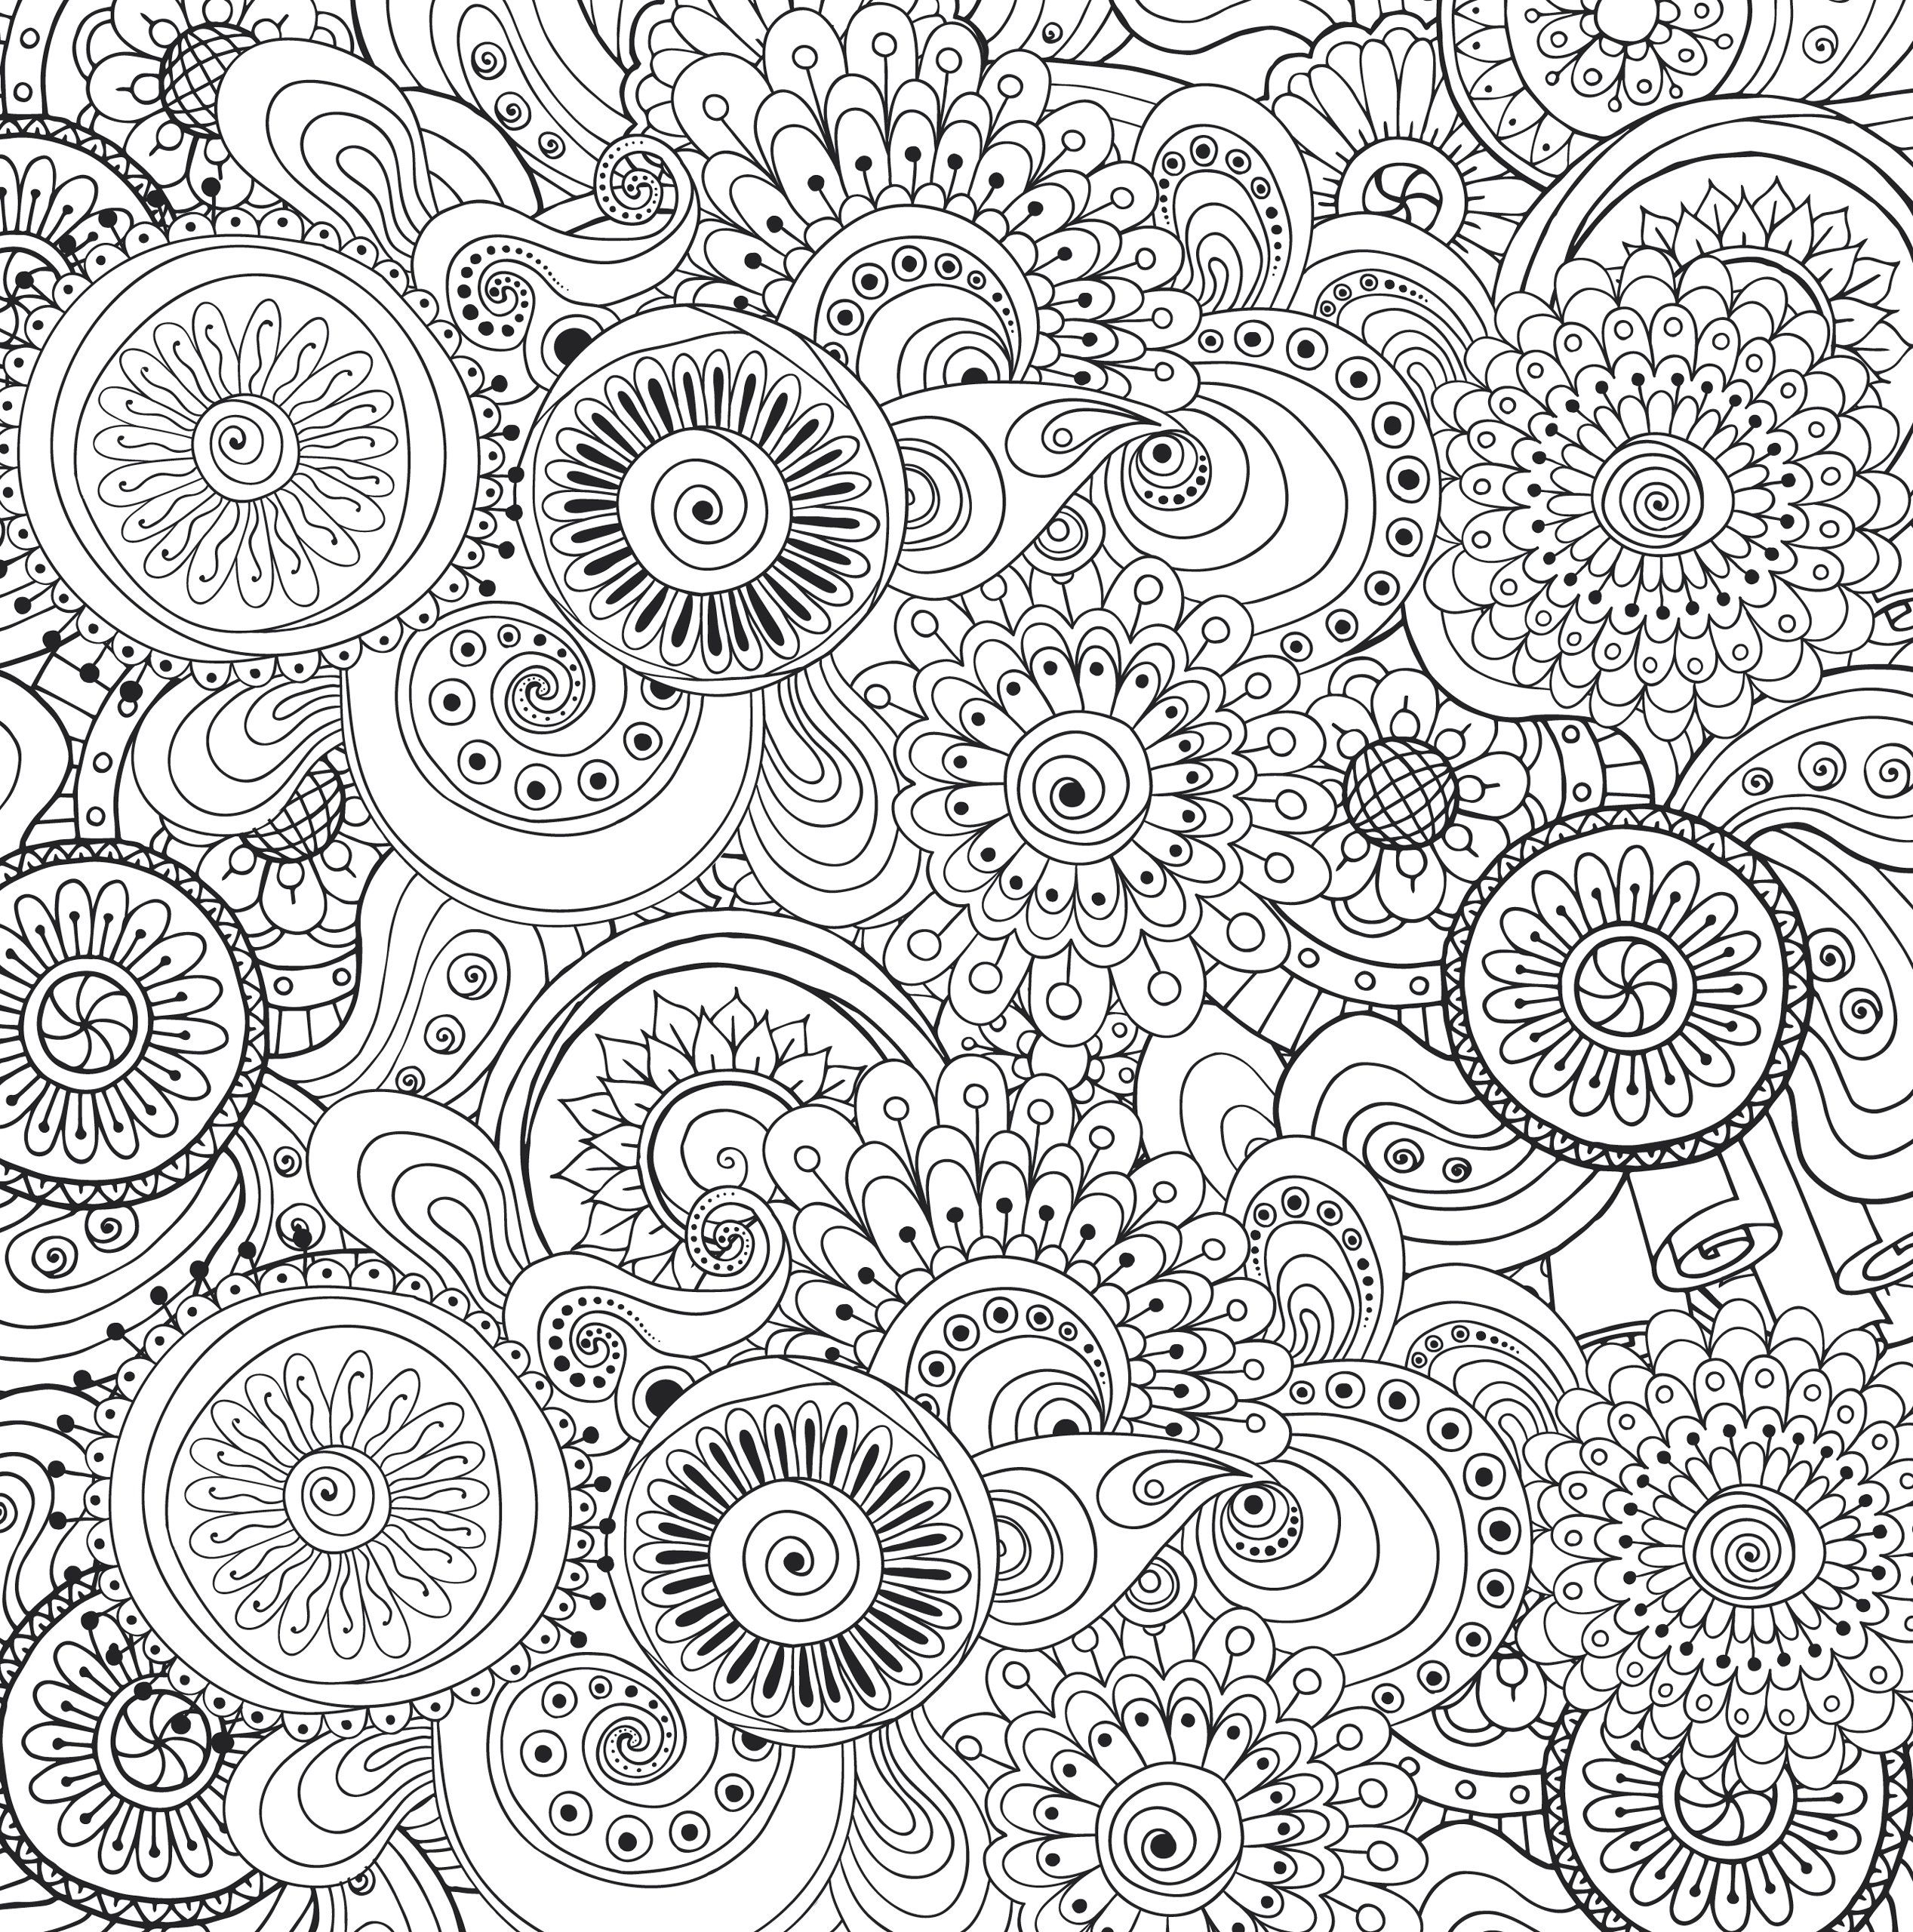 Colouring book on online - Peaceful Paisleys Adult Coloring Book 31 Stress Relieving Designs Peter Pauper Press